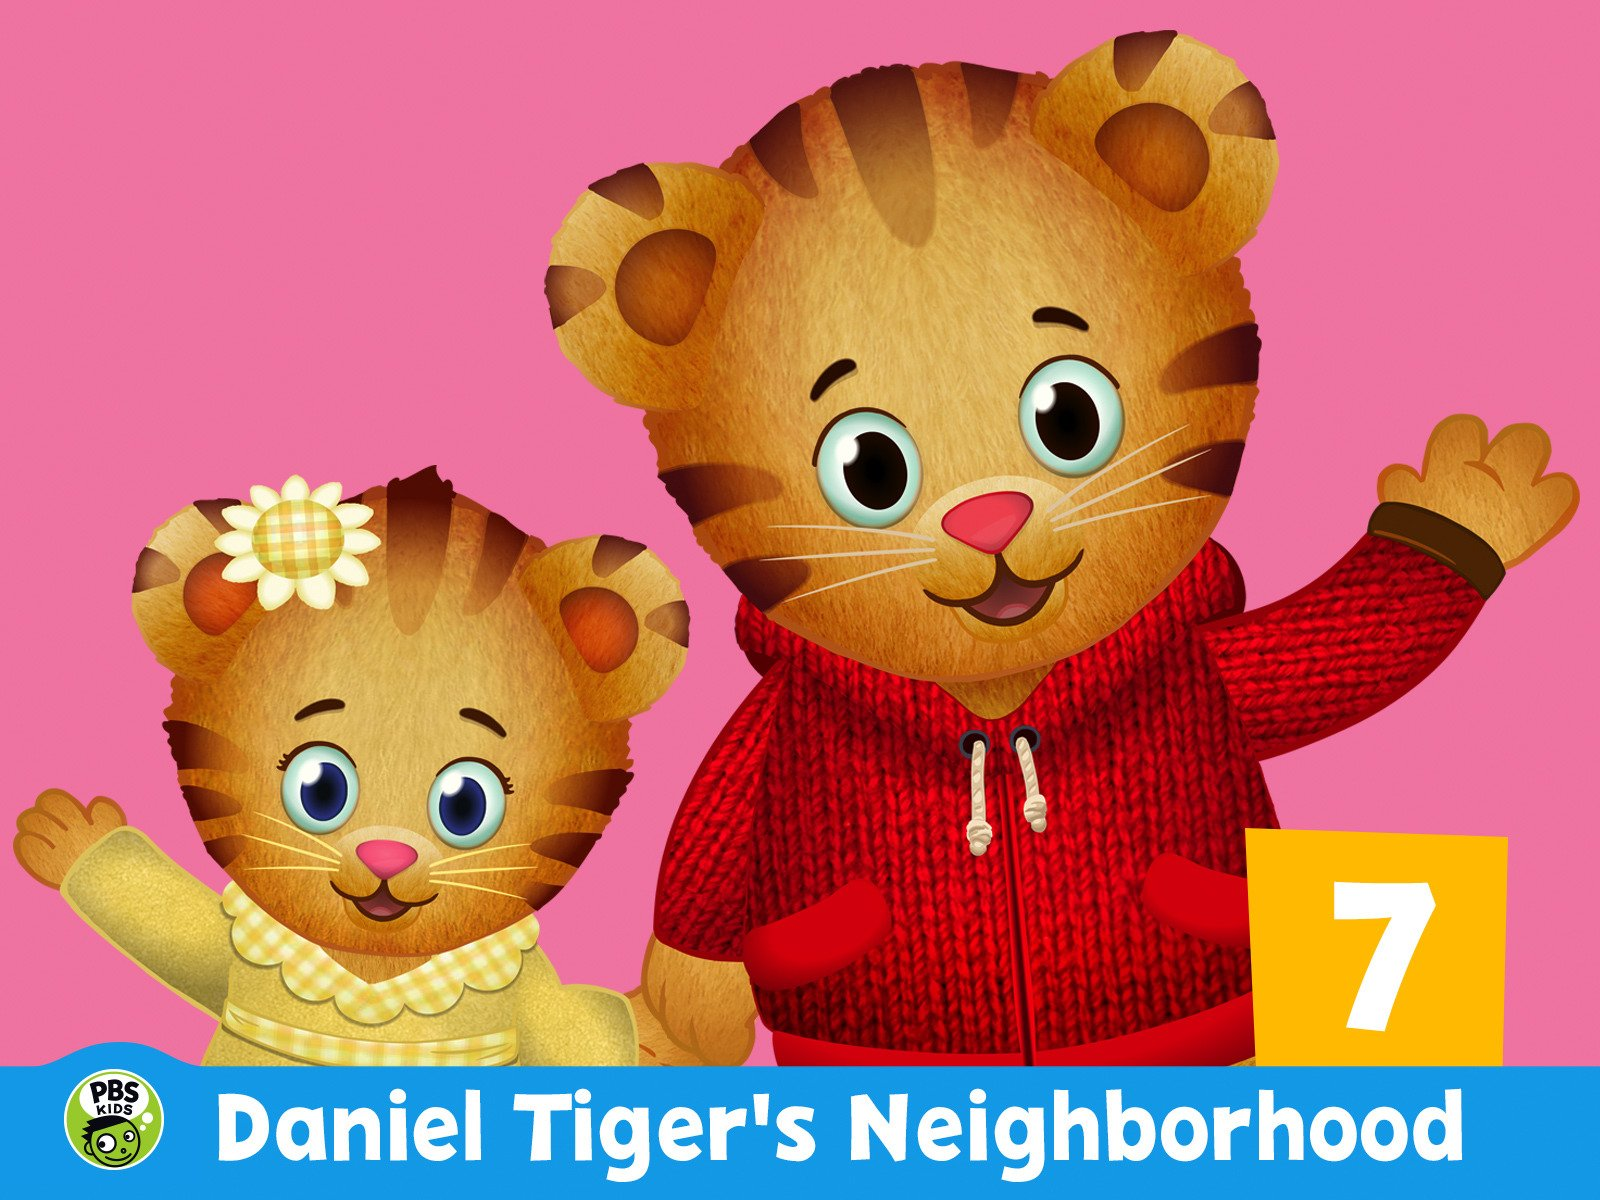 Amazon.com: Daniel Tiger\'s Neighborhood Season 7: The Fred Rogers ...